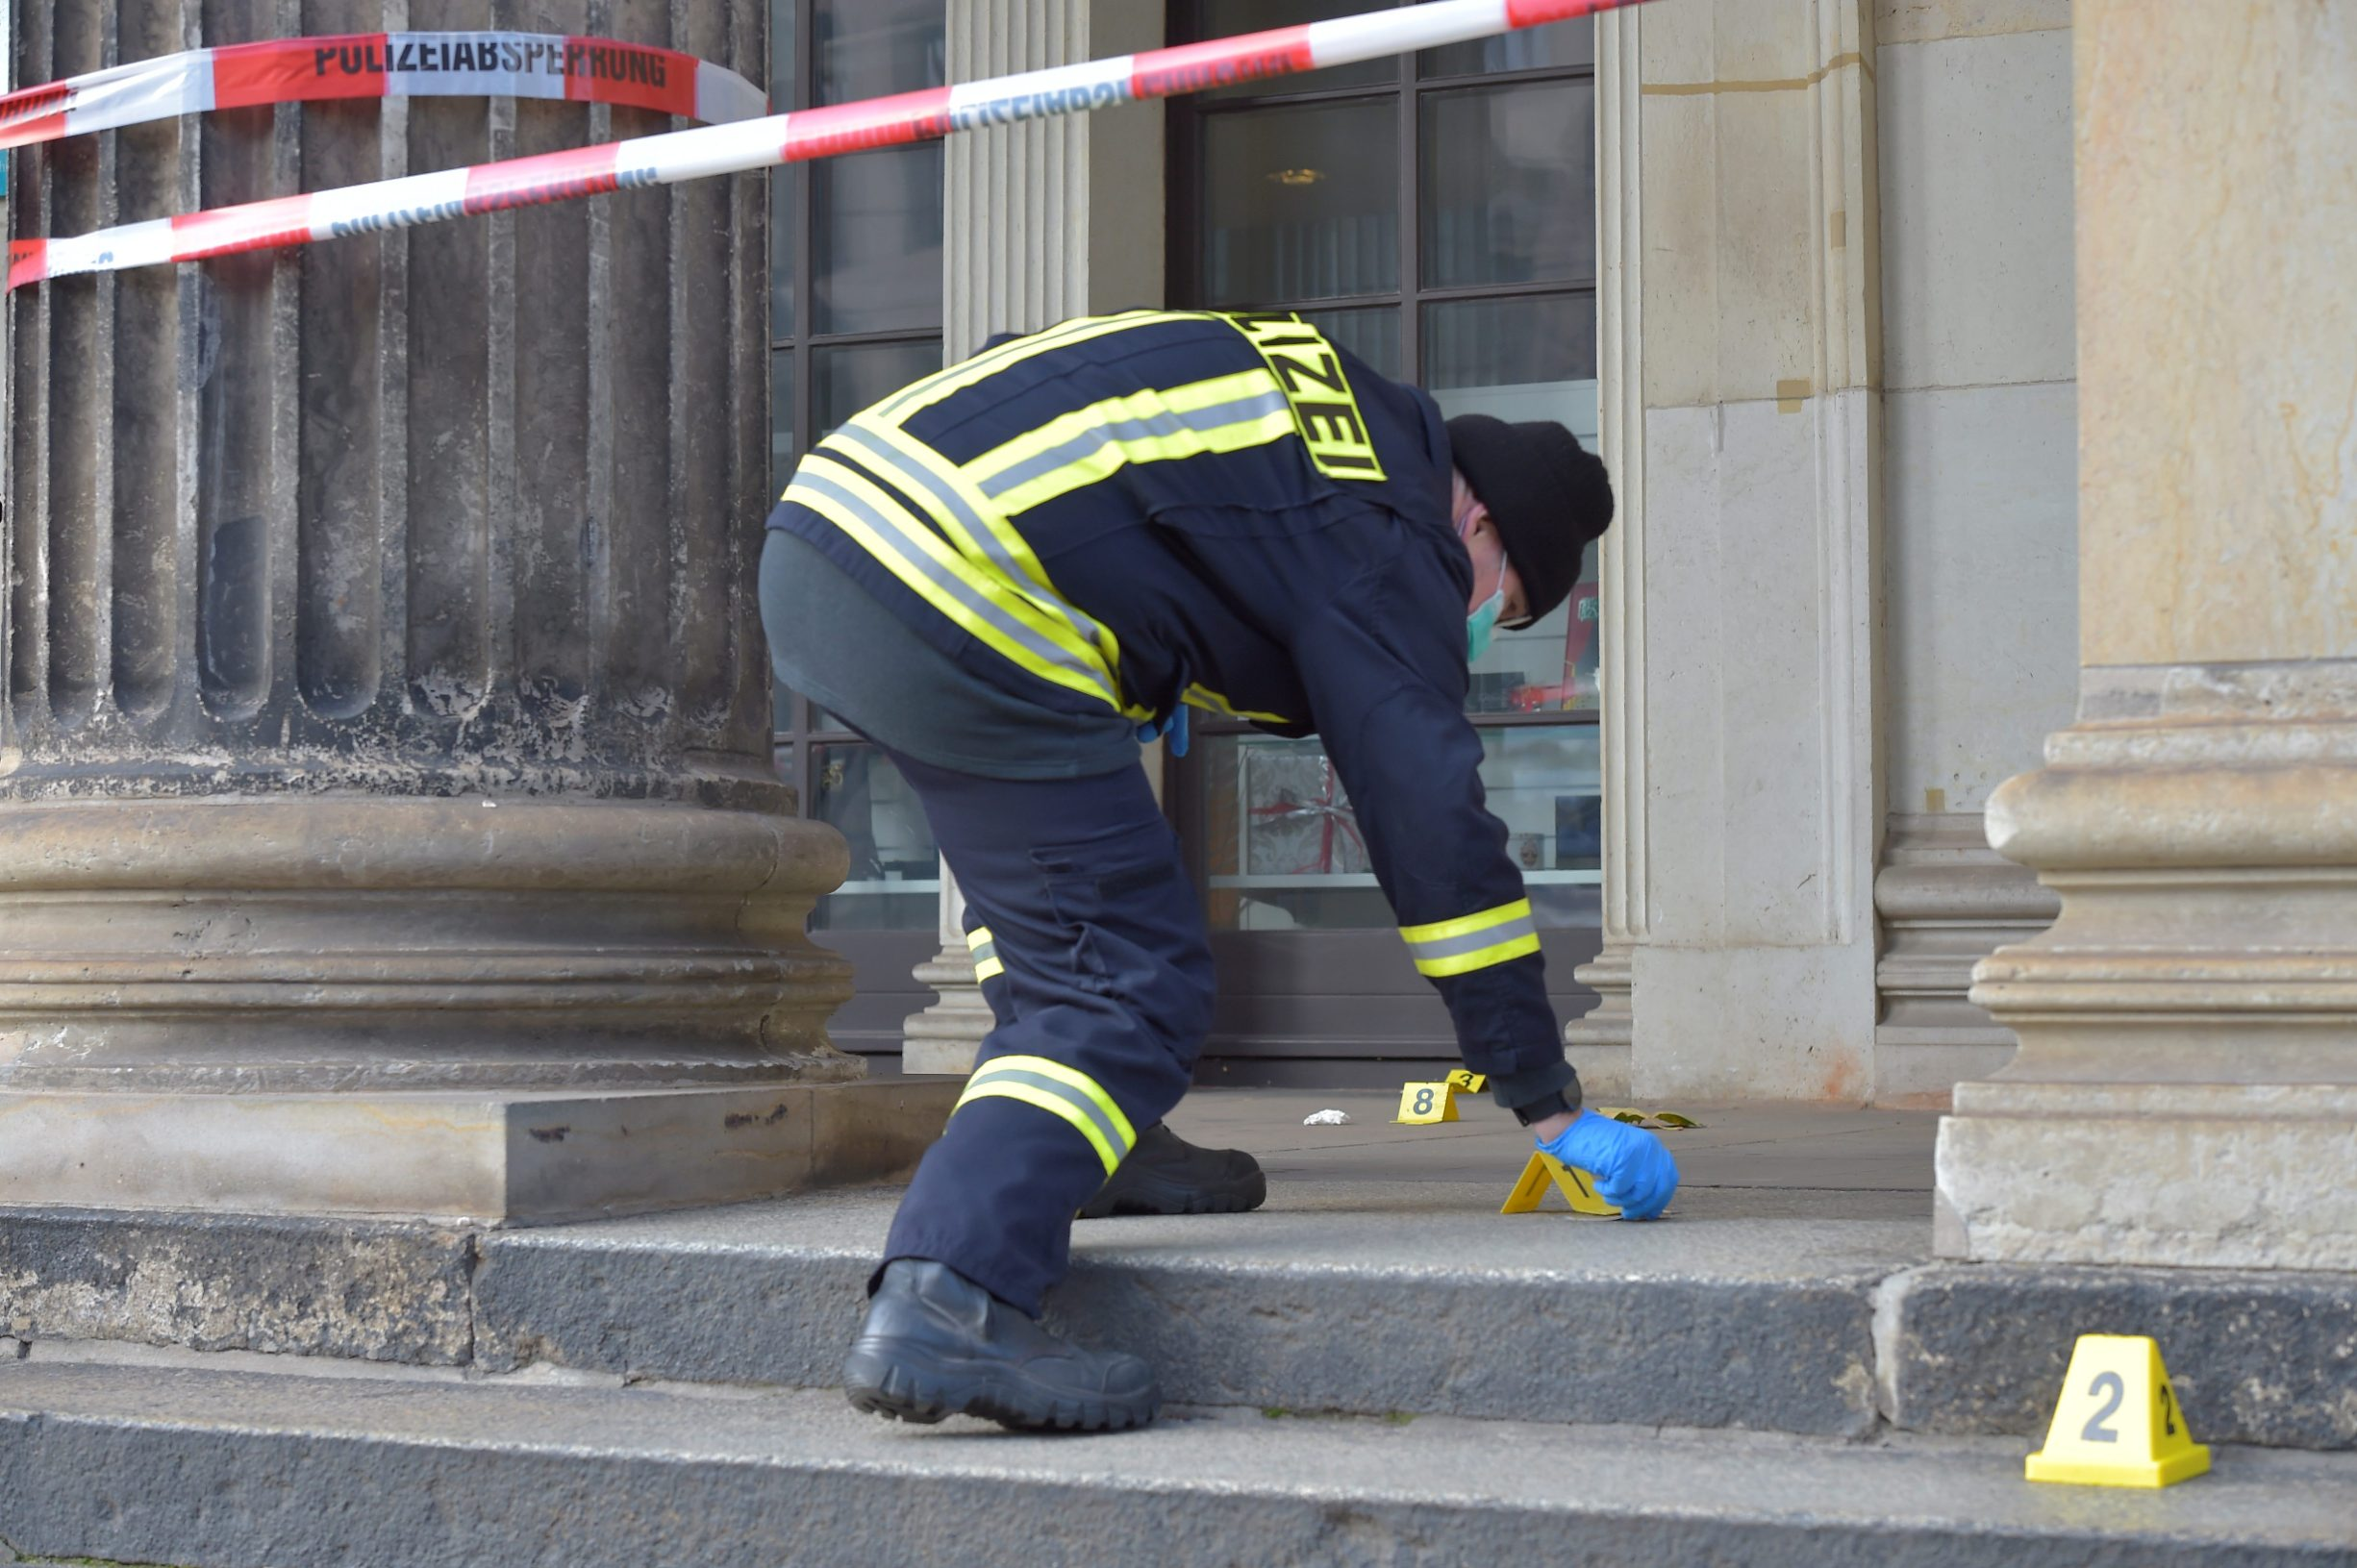 A policeman checks for evidence outside the Green Vault city palace, unique historic museum that contains the largest collection of treasures in Europe after a robbery in Dresden, Germany, November 25, 2019. REUTERS/Matthias Rietschel